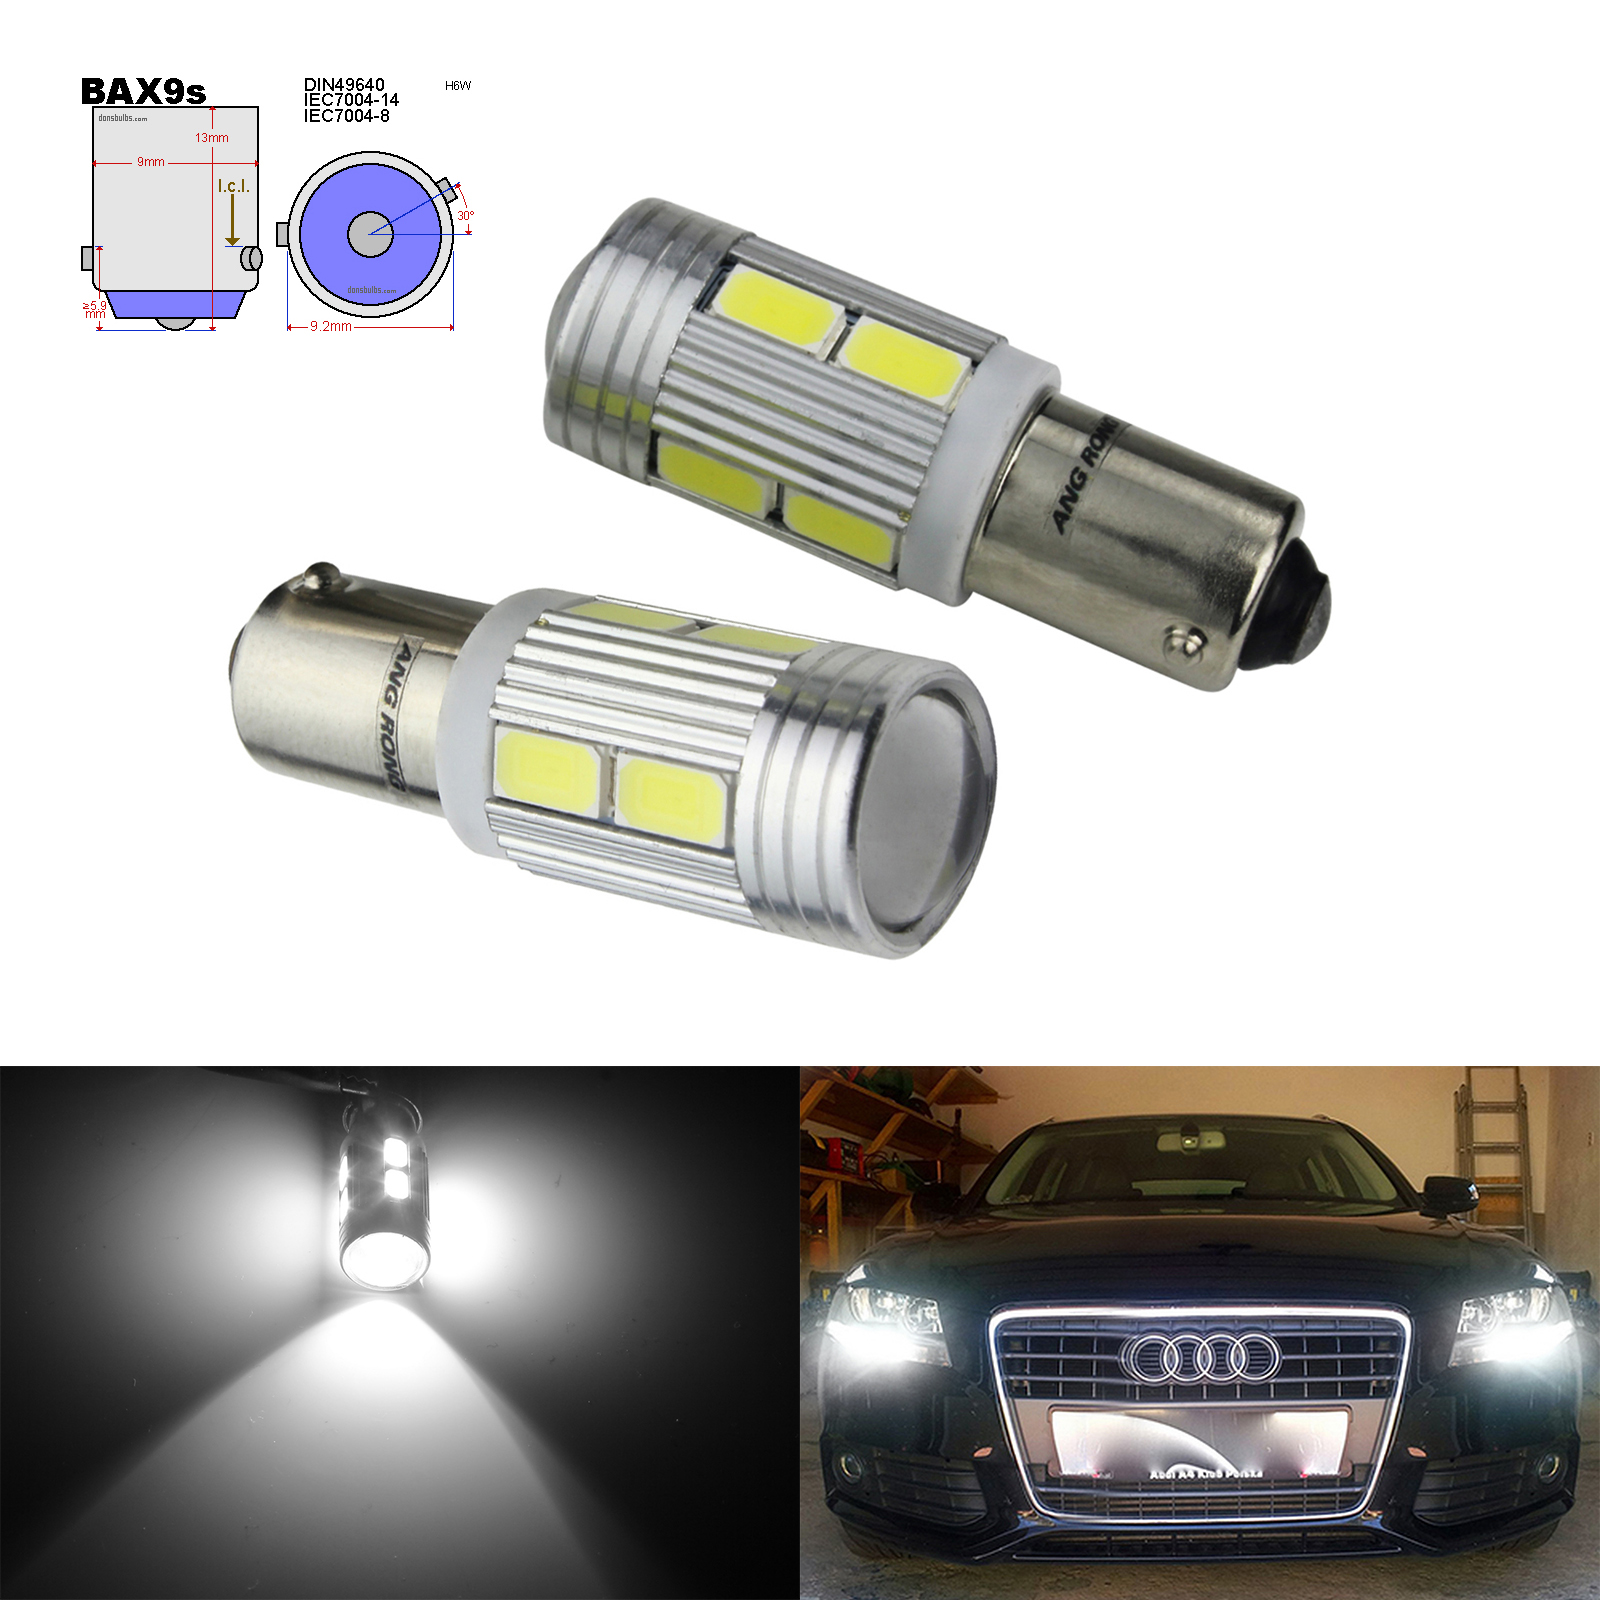 ANGRONG 2x H6W BAX9s 10 SMD LED 433 434 Bulb Indicator Reverse Parking Side Light White